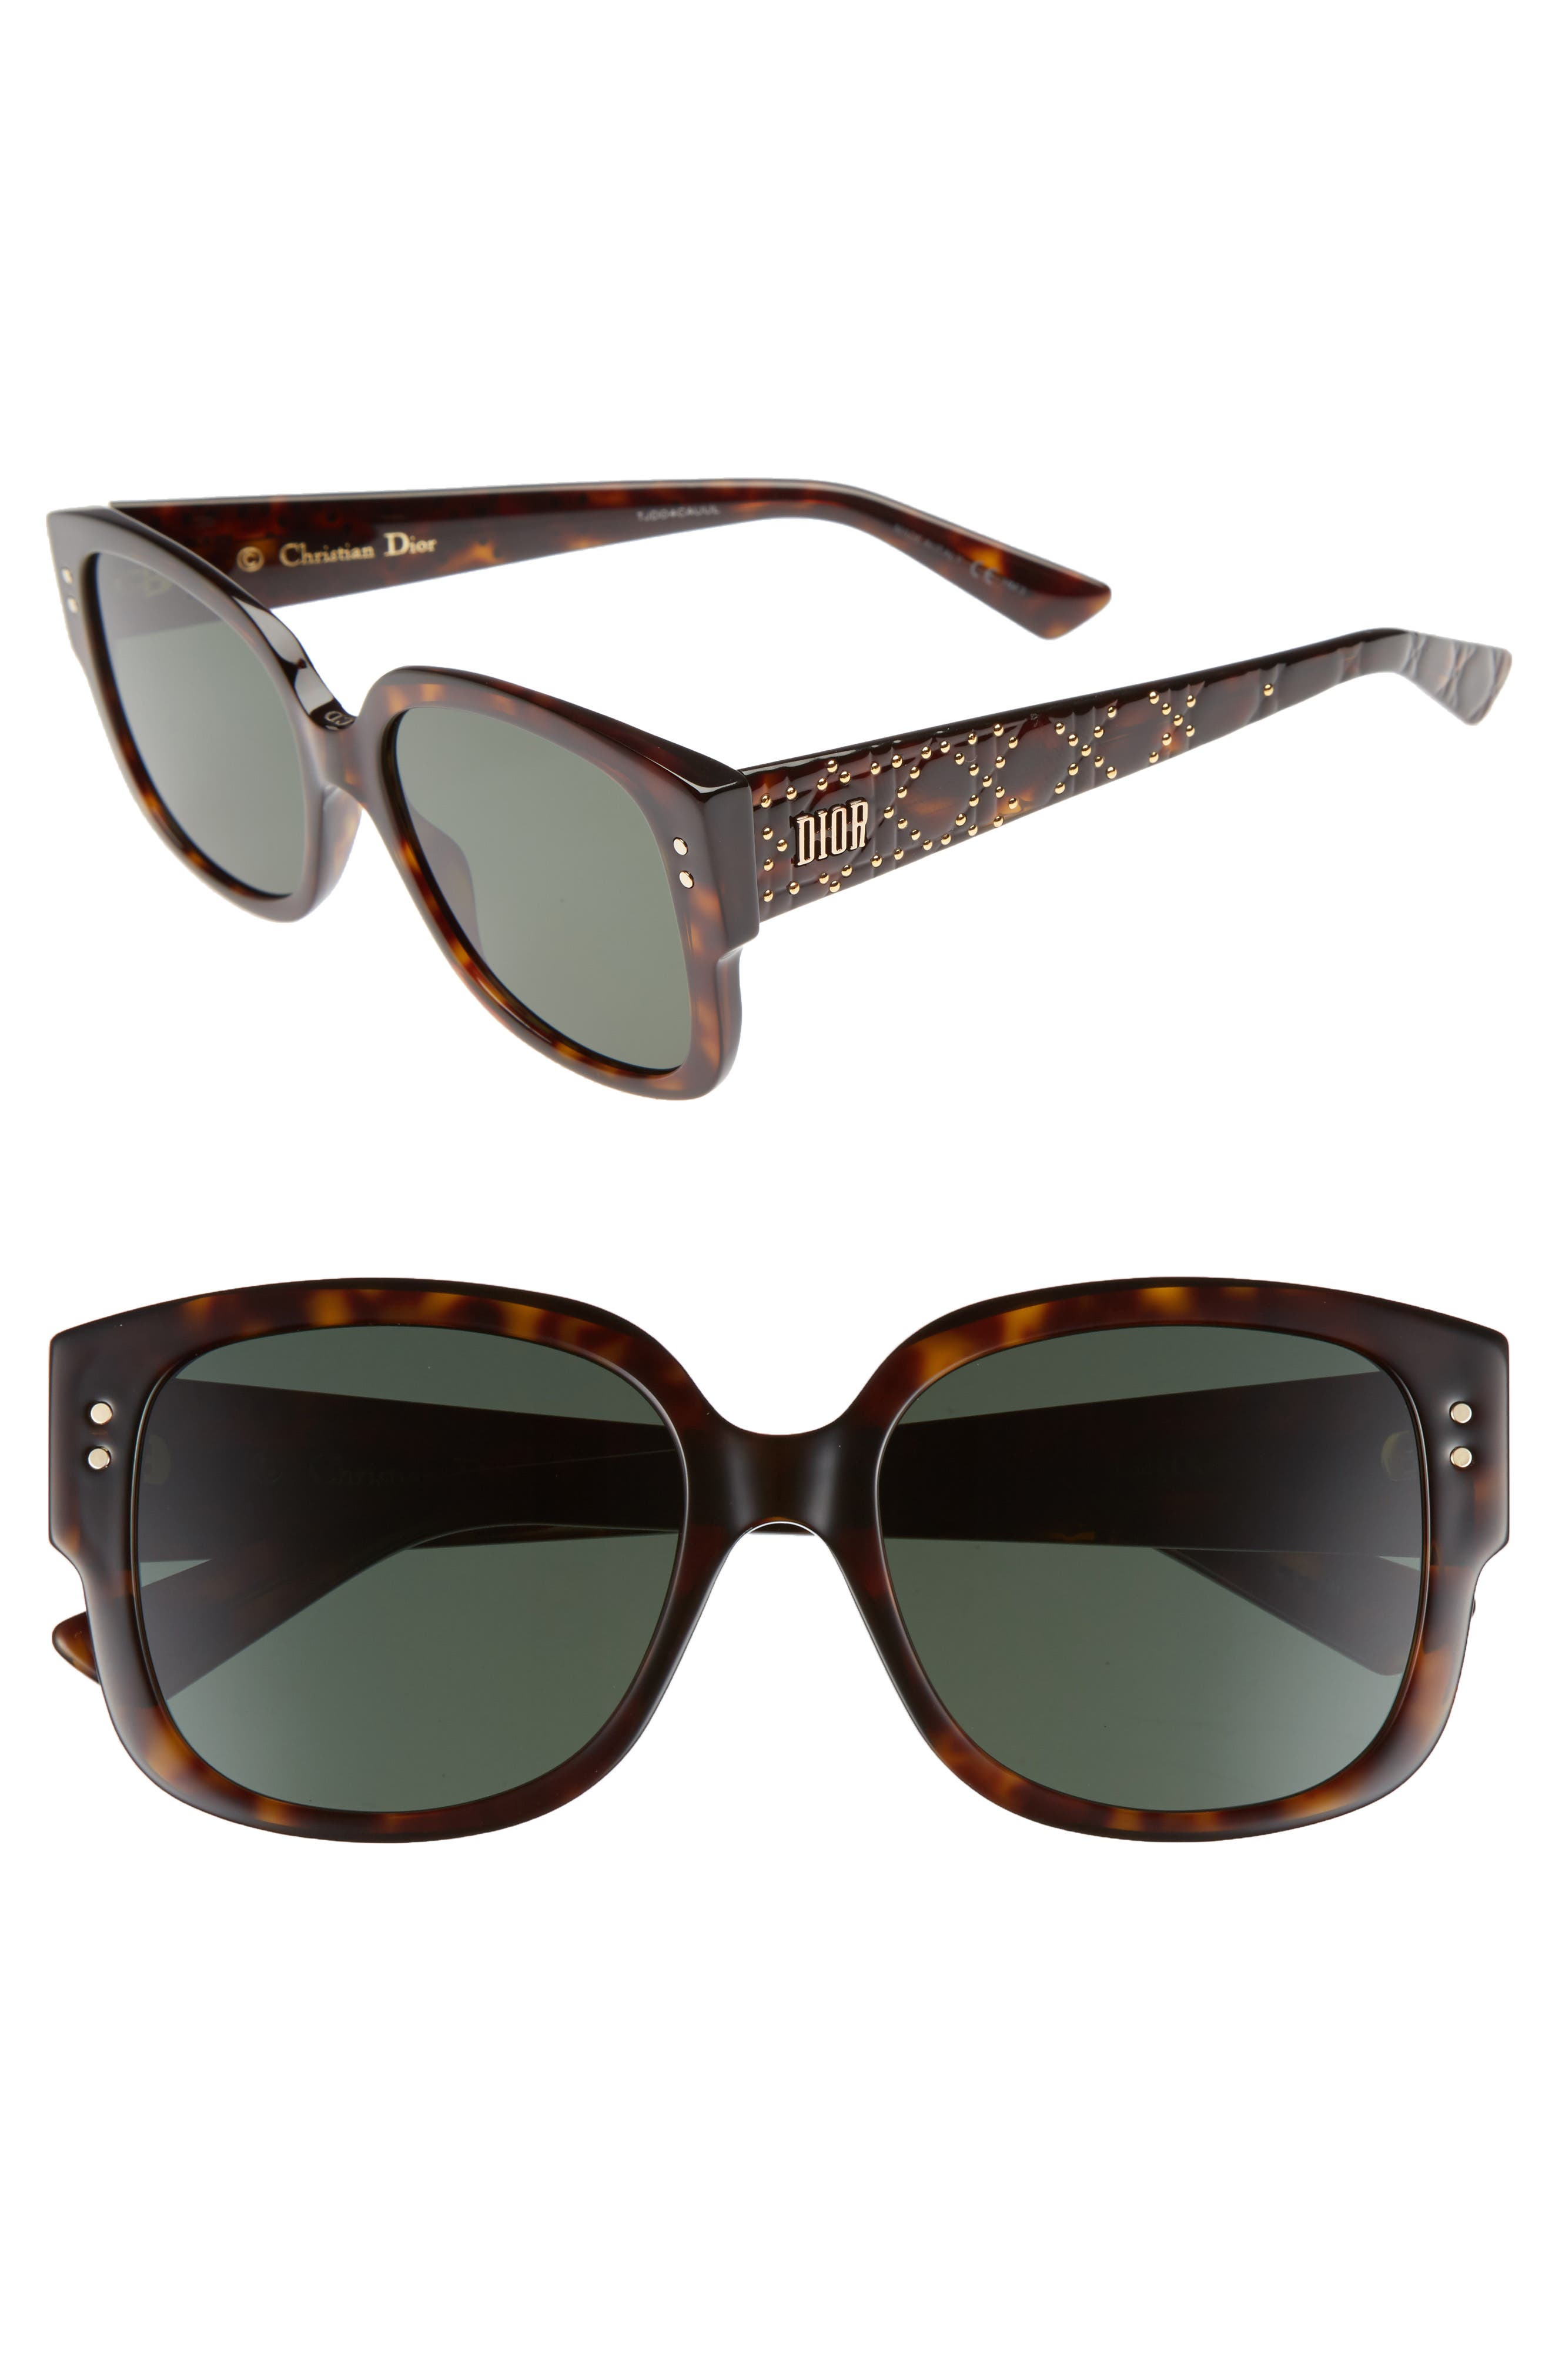 Square 54mm Sunglasses,                             Main thumbnail 1, color,                             Dark Havana